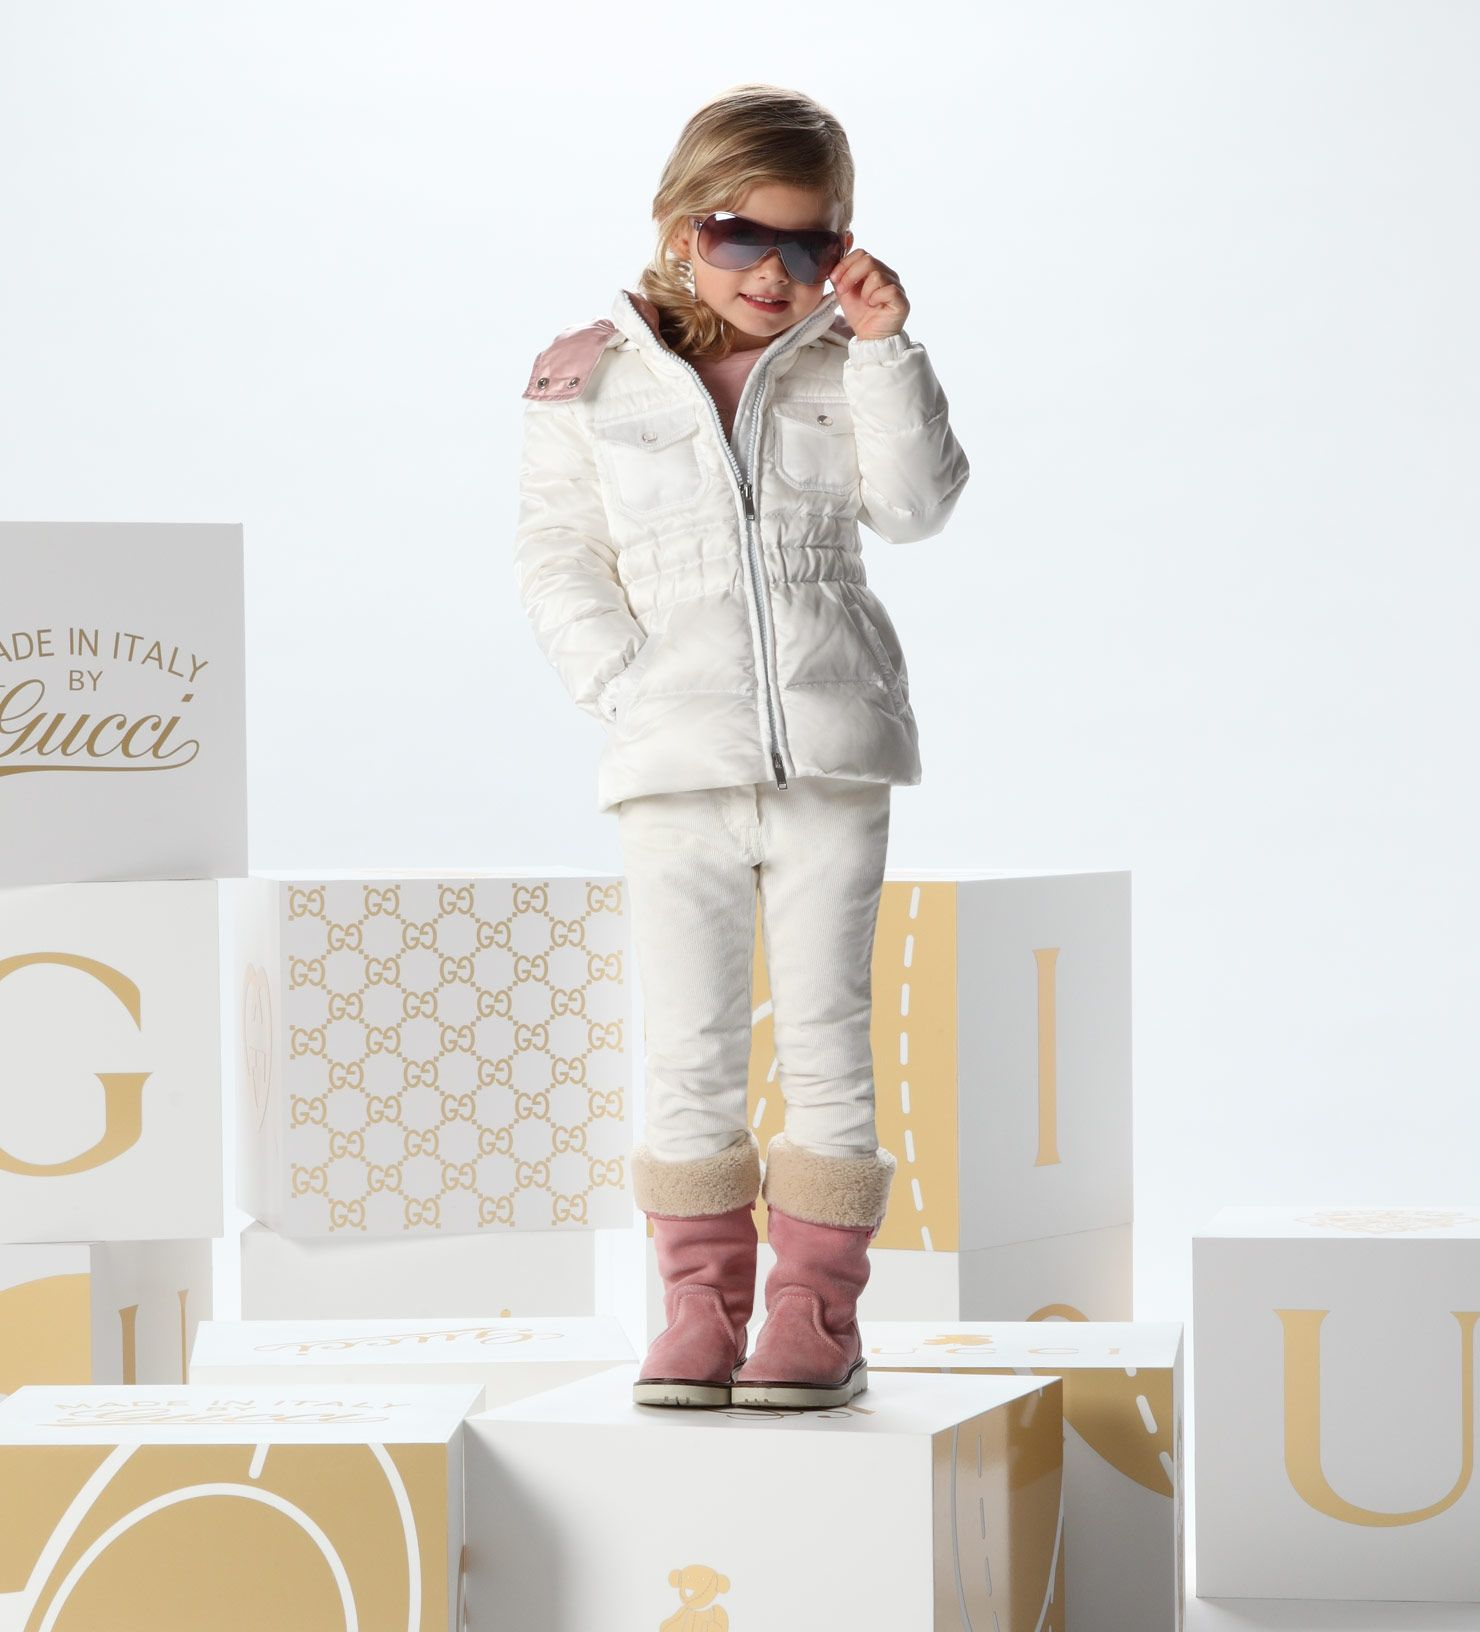 d7e359c4eb2 Cute ski outfit for girls by Gucci